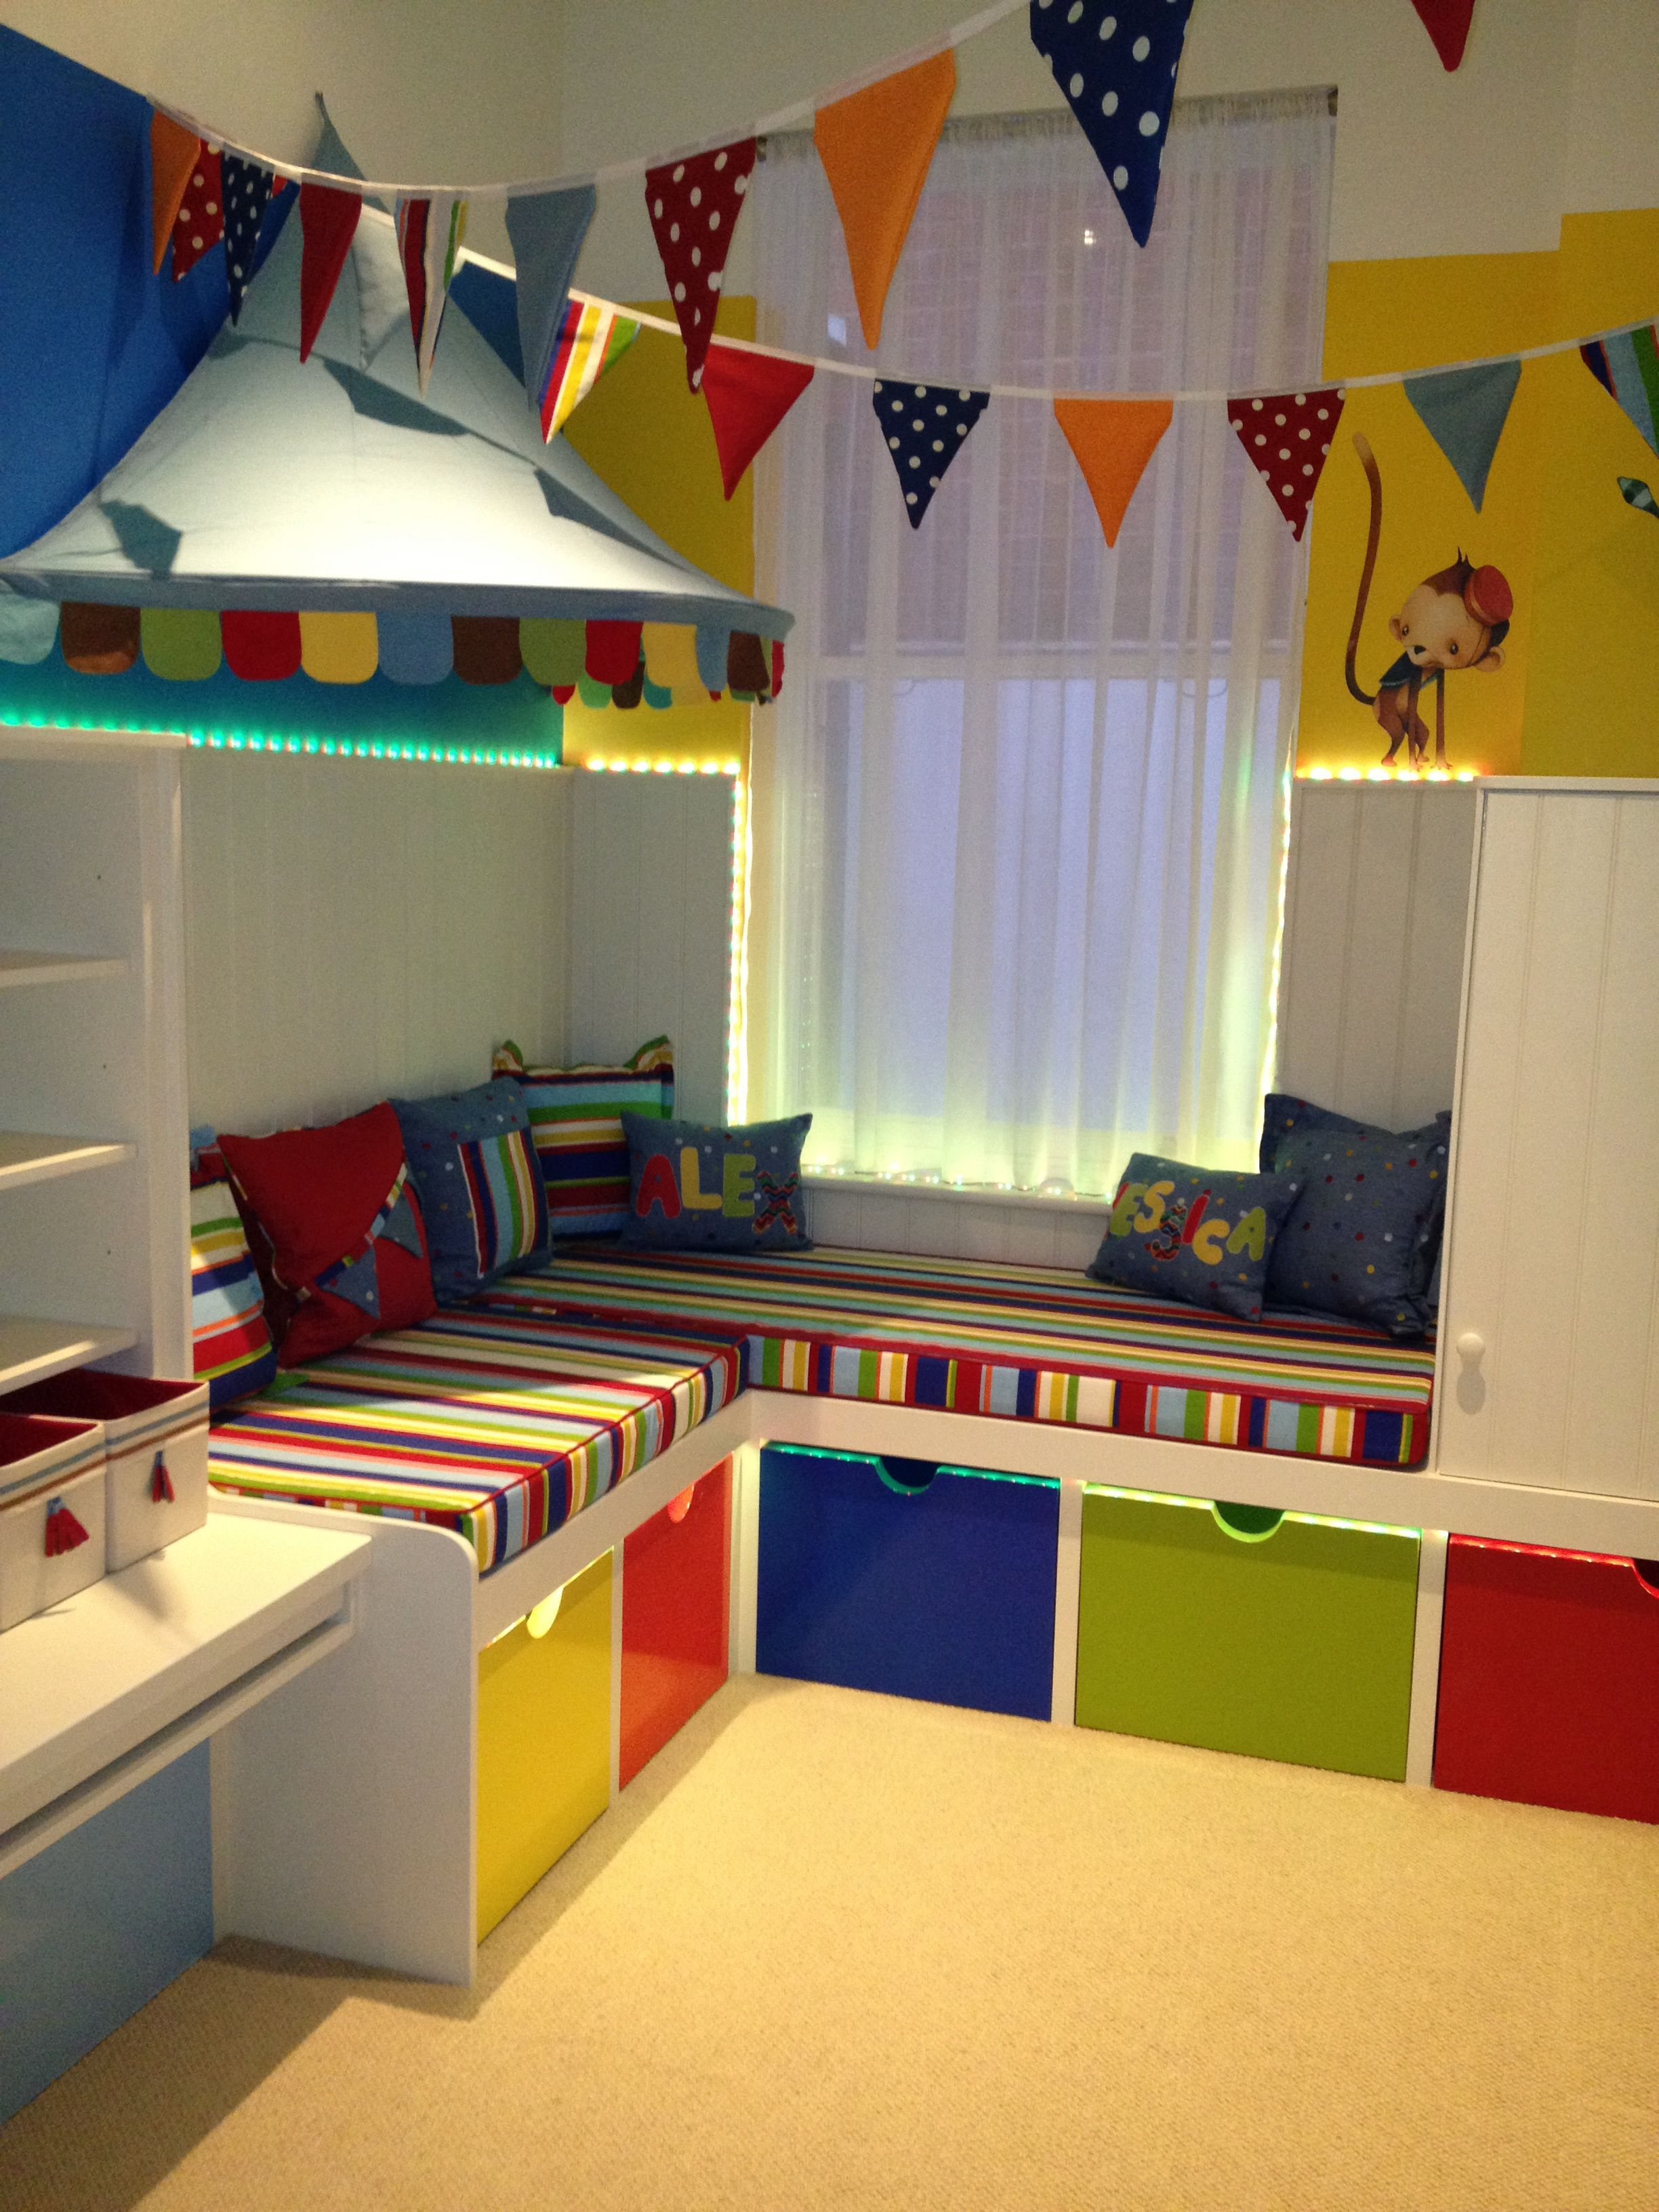 Pendant Banner Across Room Ends Tied To O Rings Secure Onto Cup Hooks Children S Playroom London Aus Camerette Idee Letto Organizzare La Camera Dei Bambini